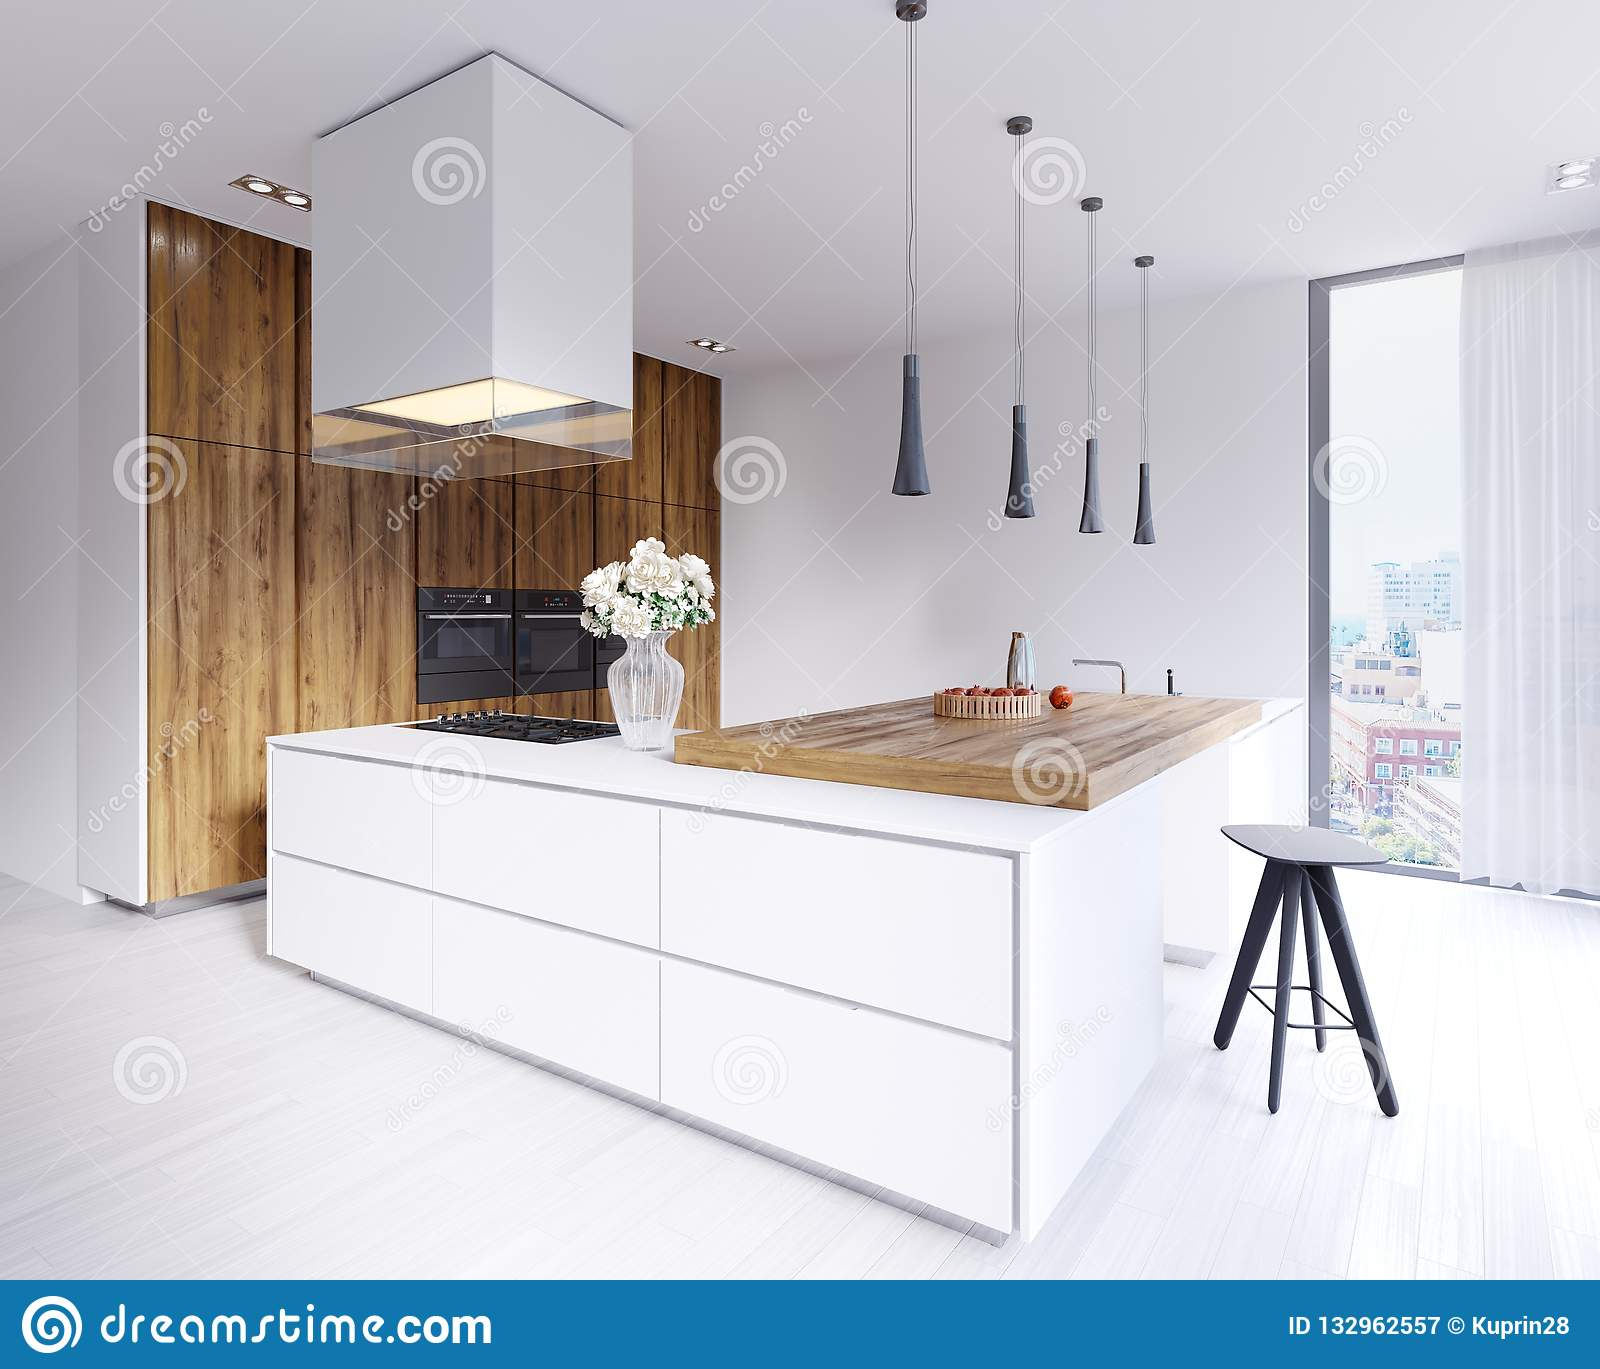 Designed Corner White Kitchen In The Scandinavian Style. With ...